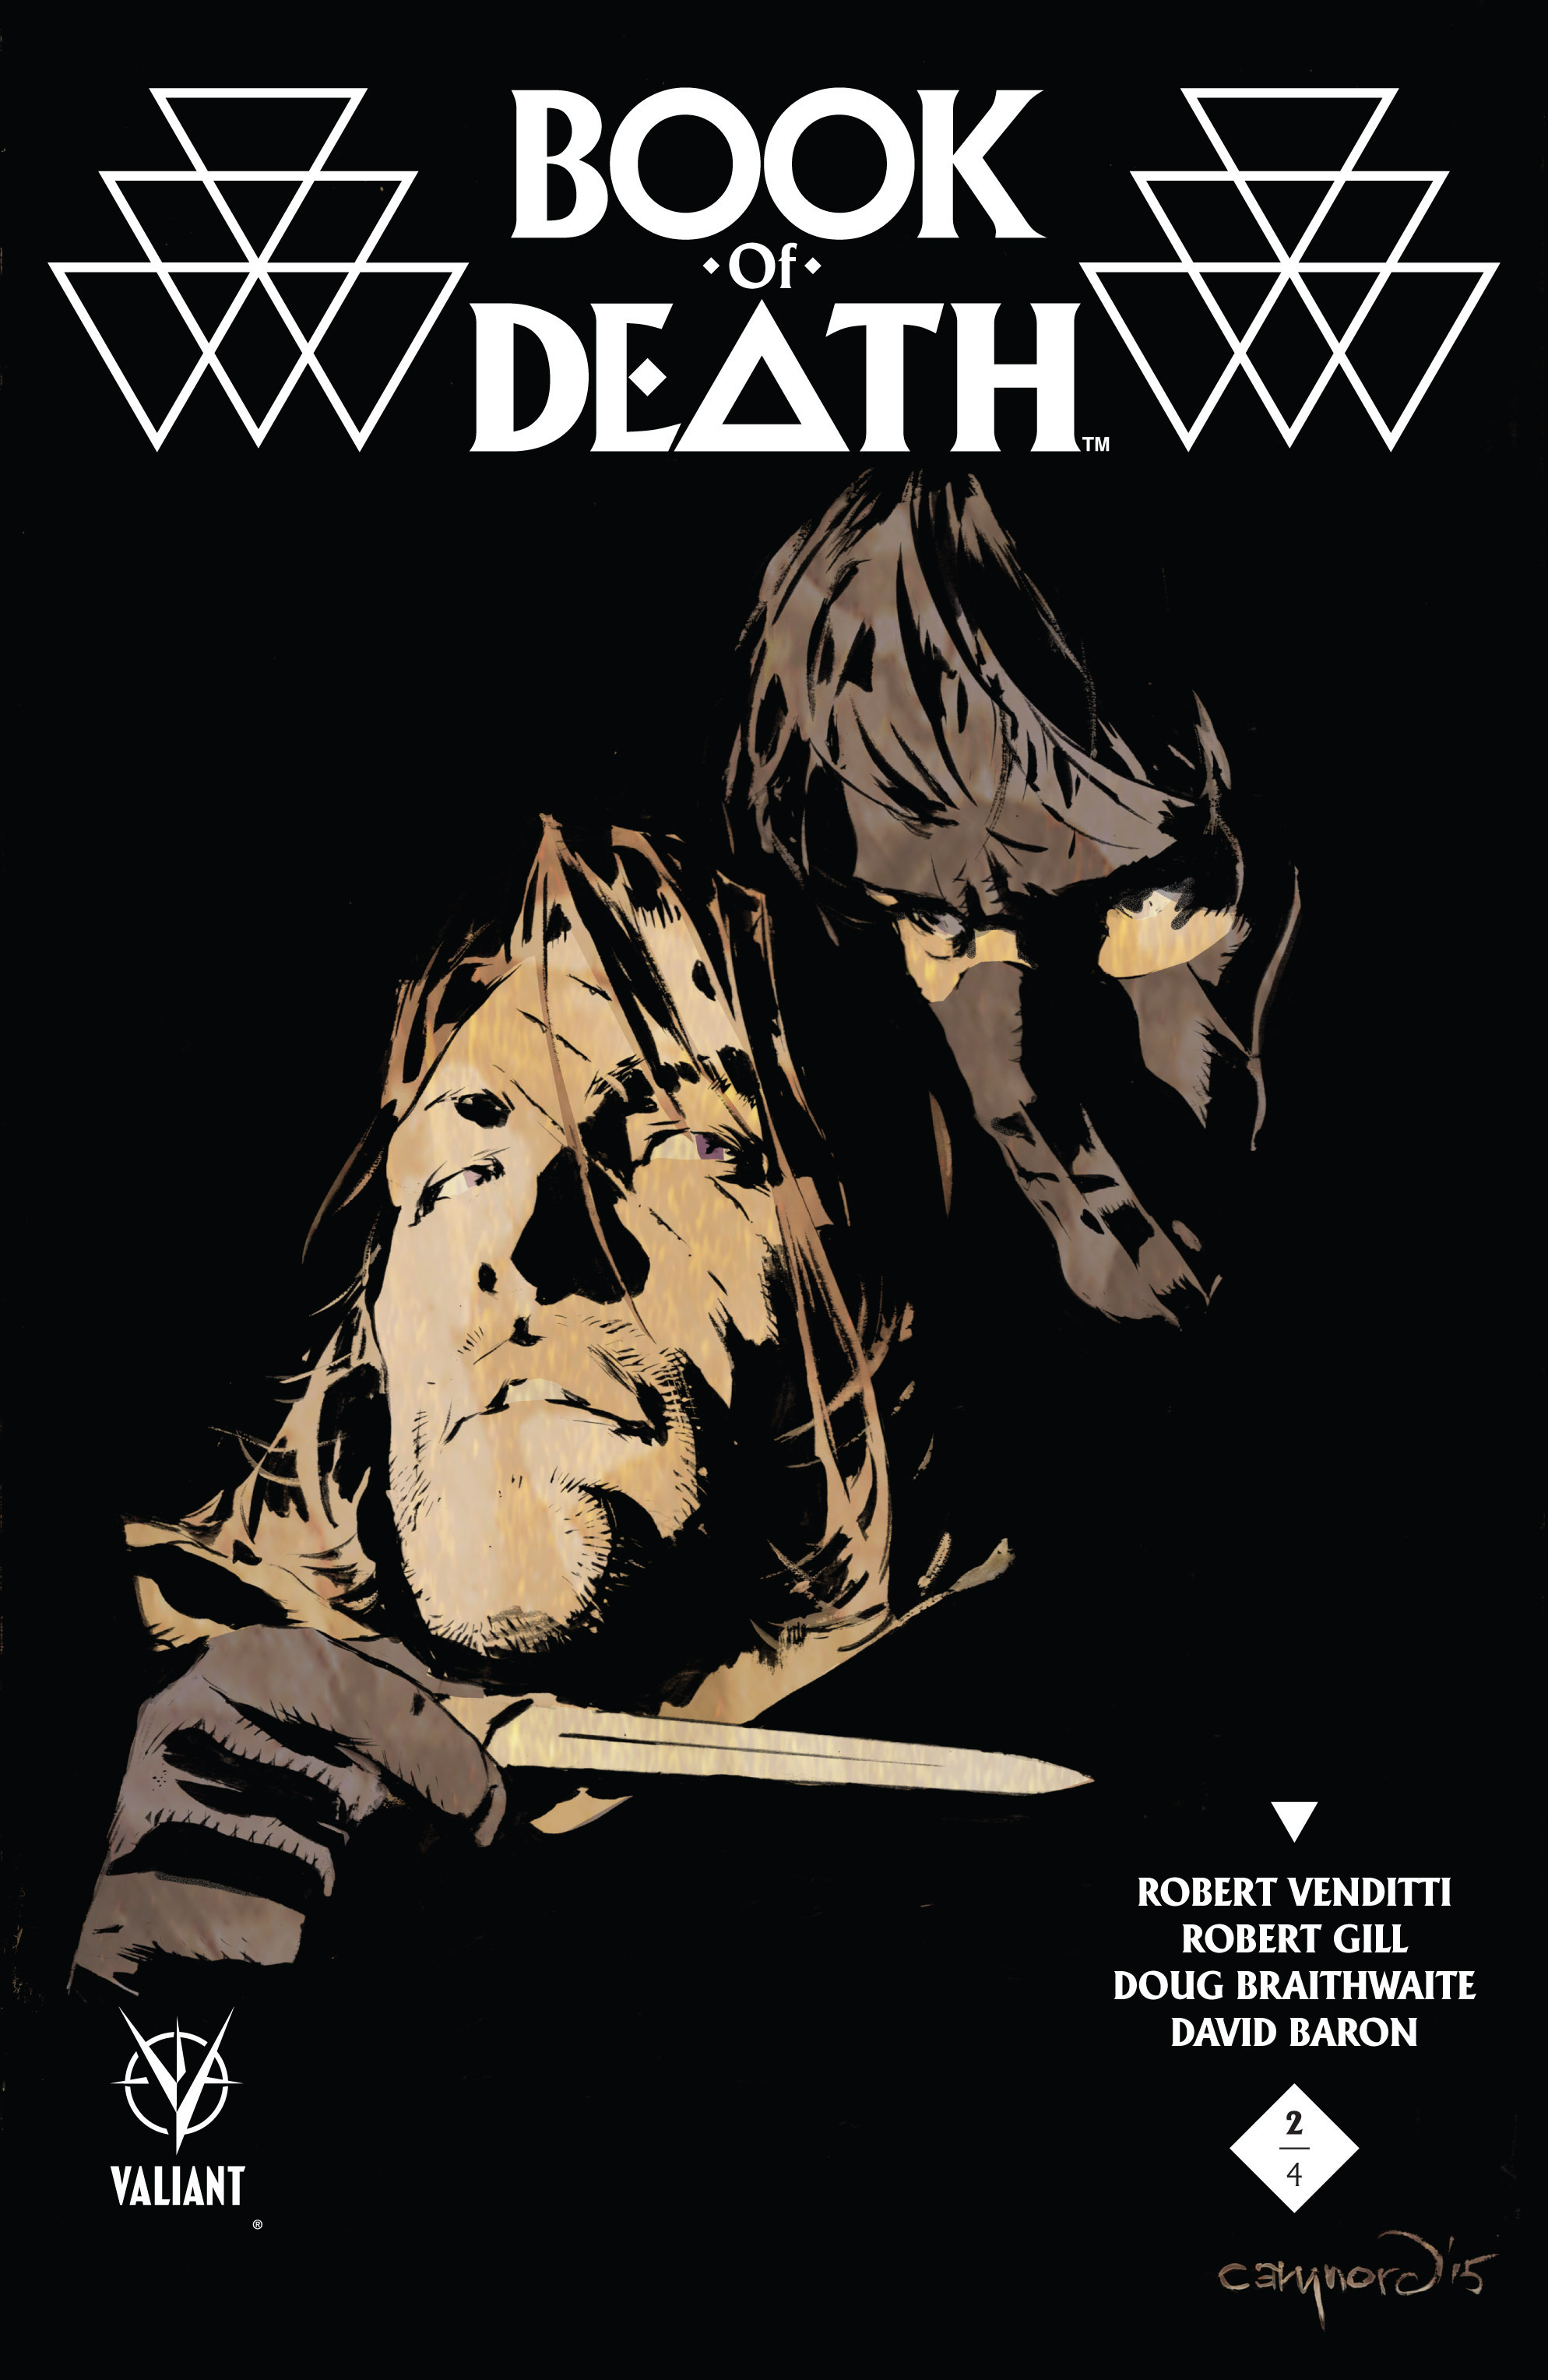 Book of Death Issue 2